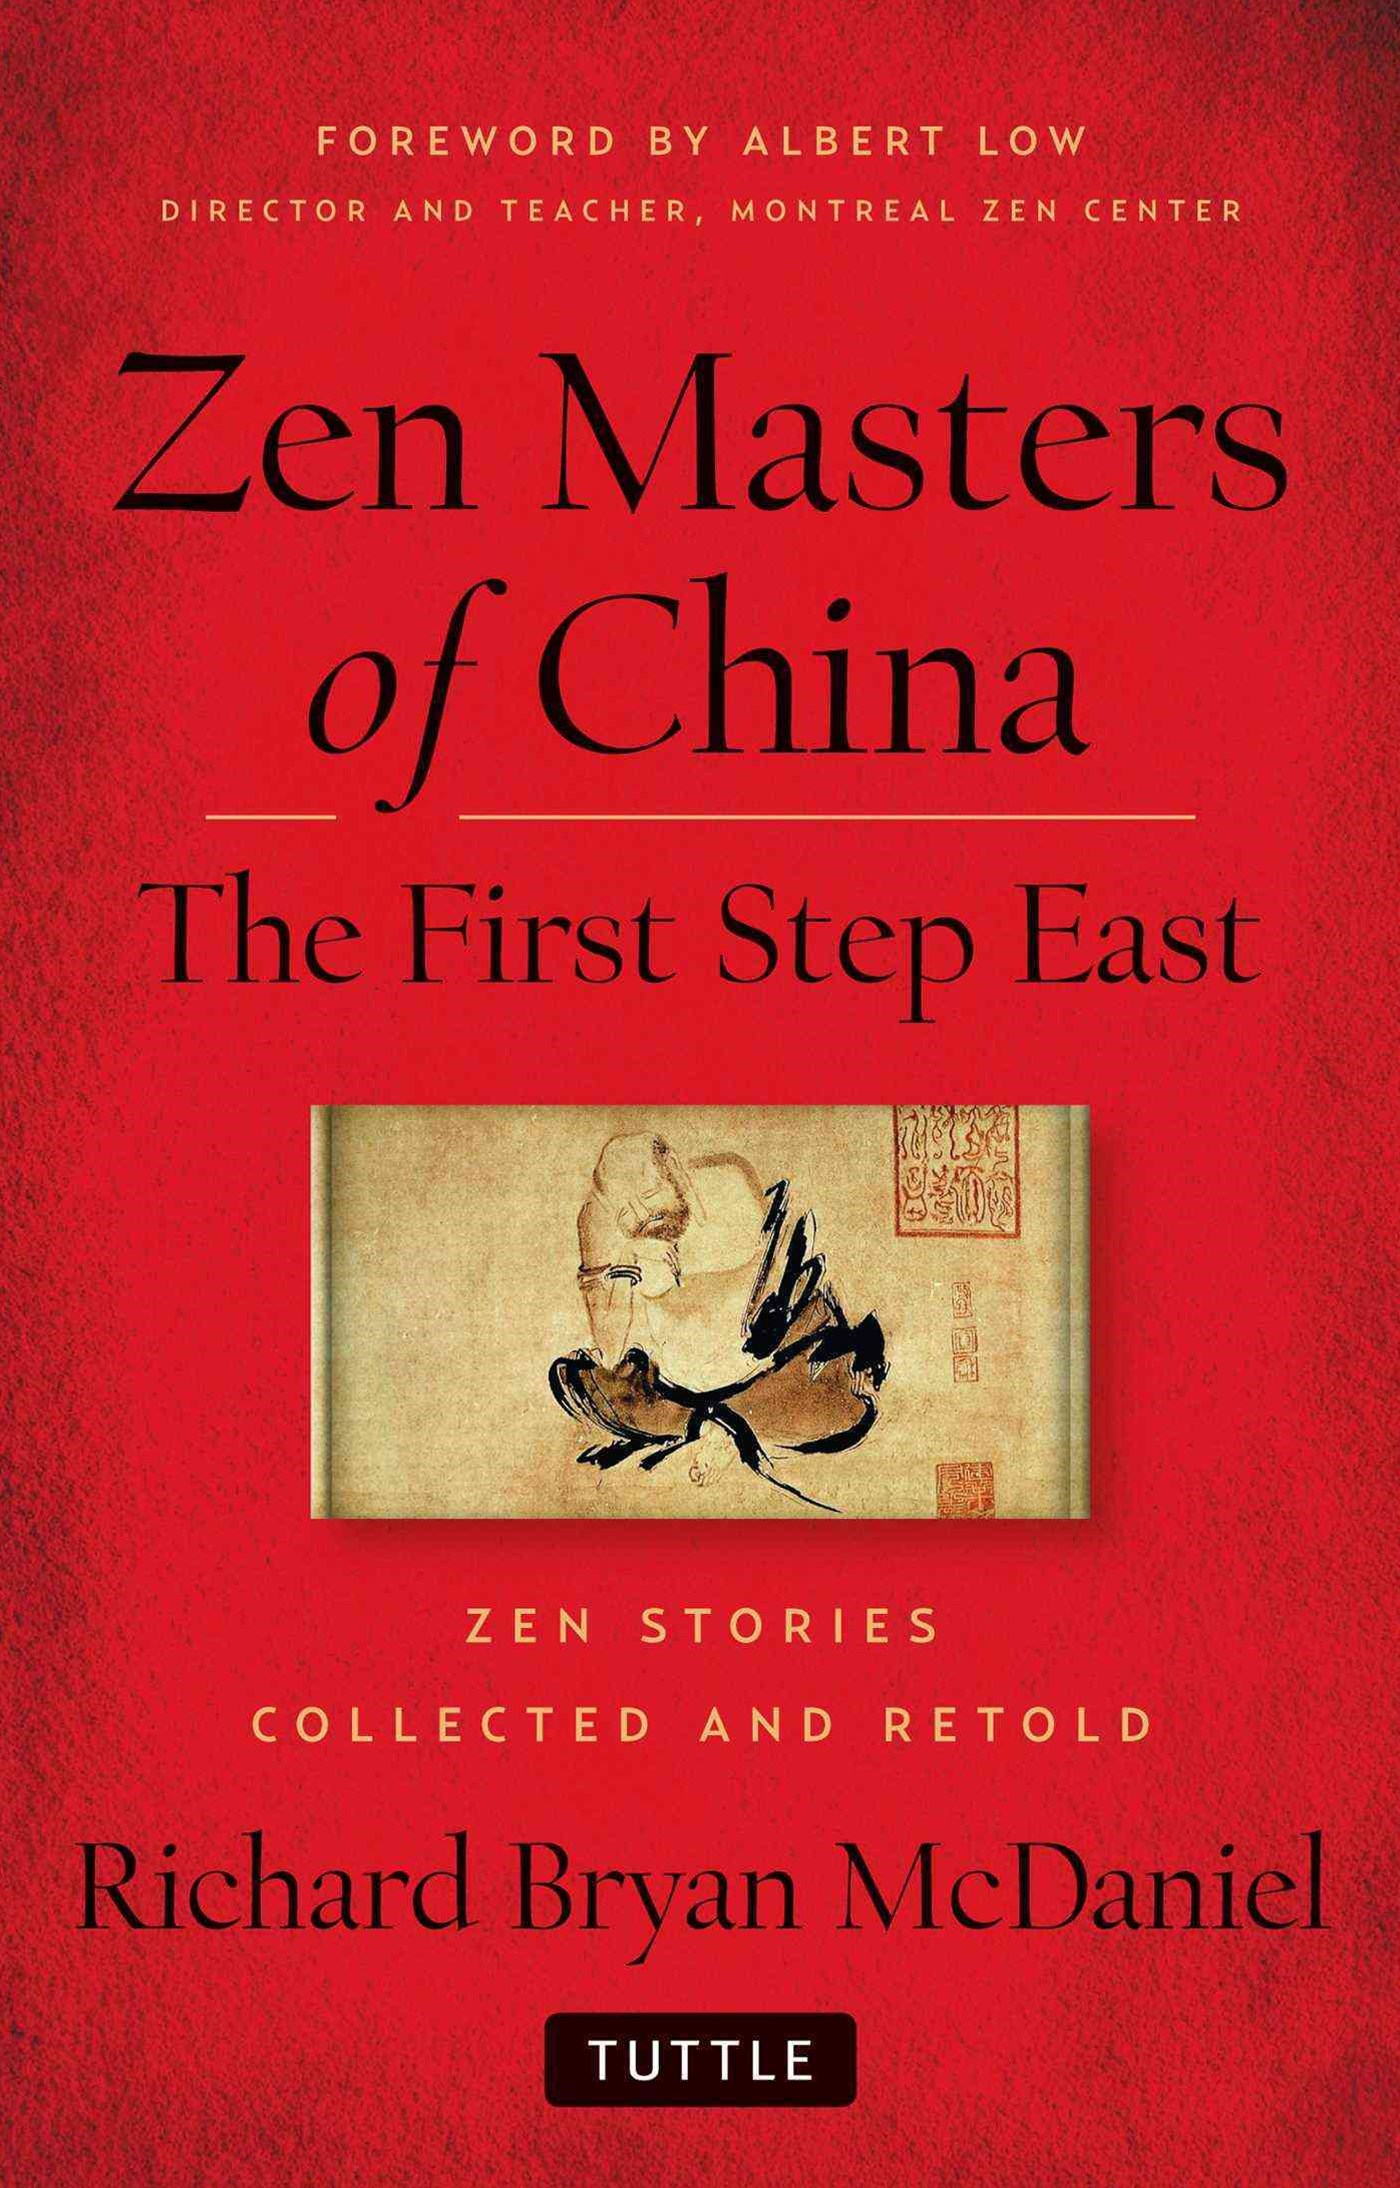 Zen Masters of China